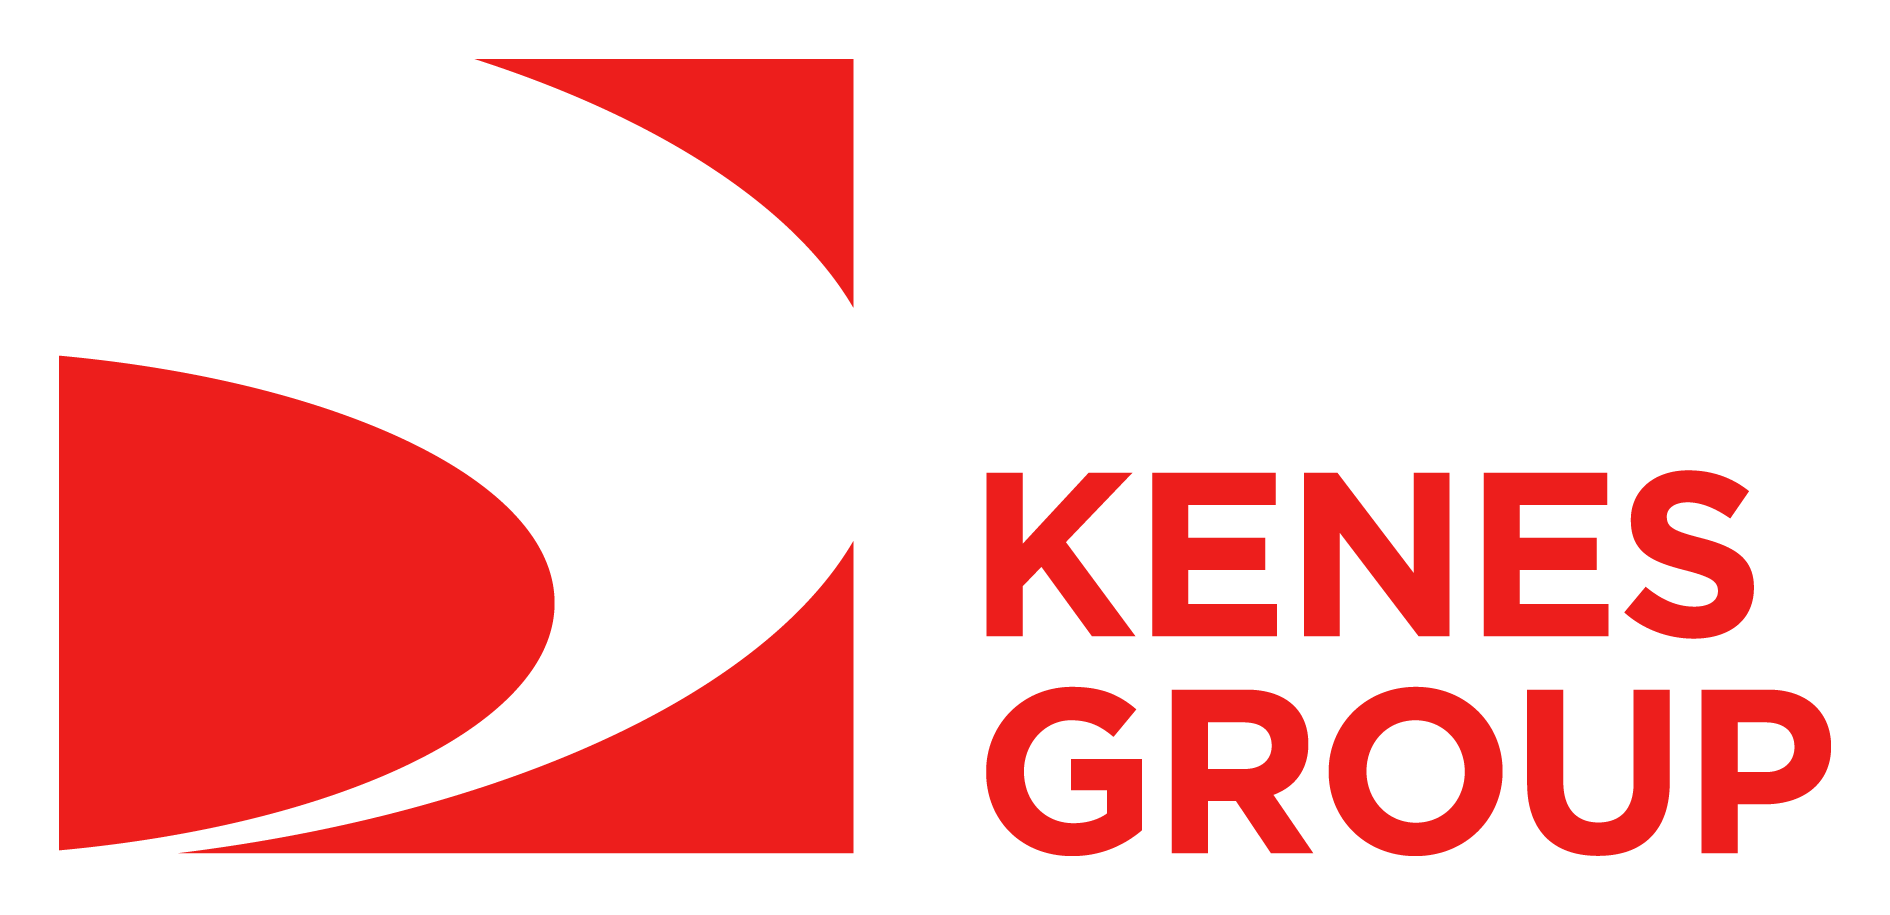 KENES GROUP Logo.png